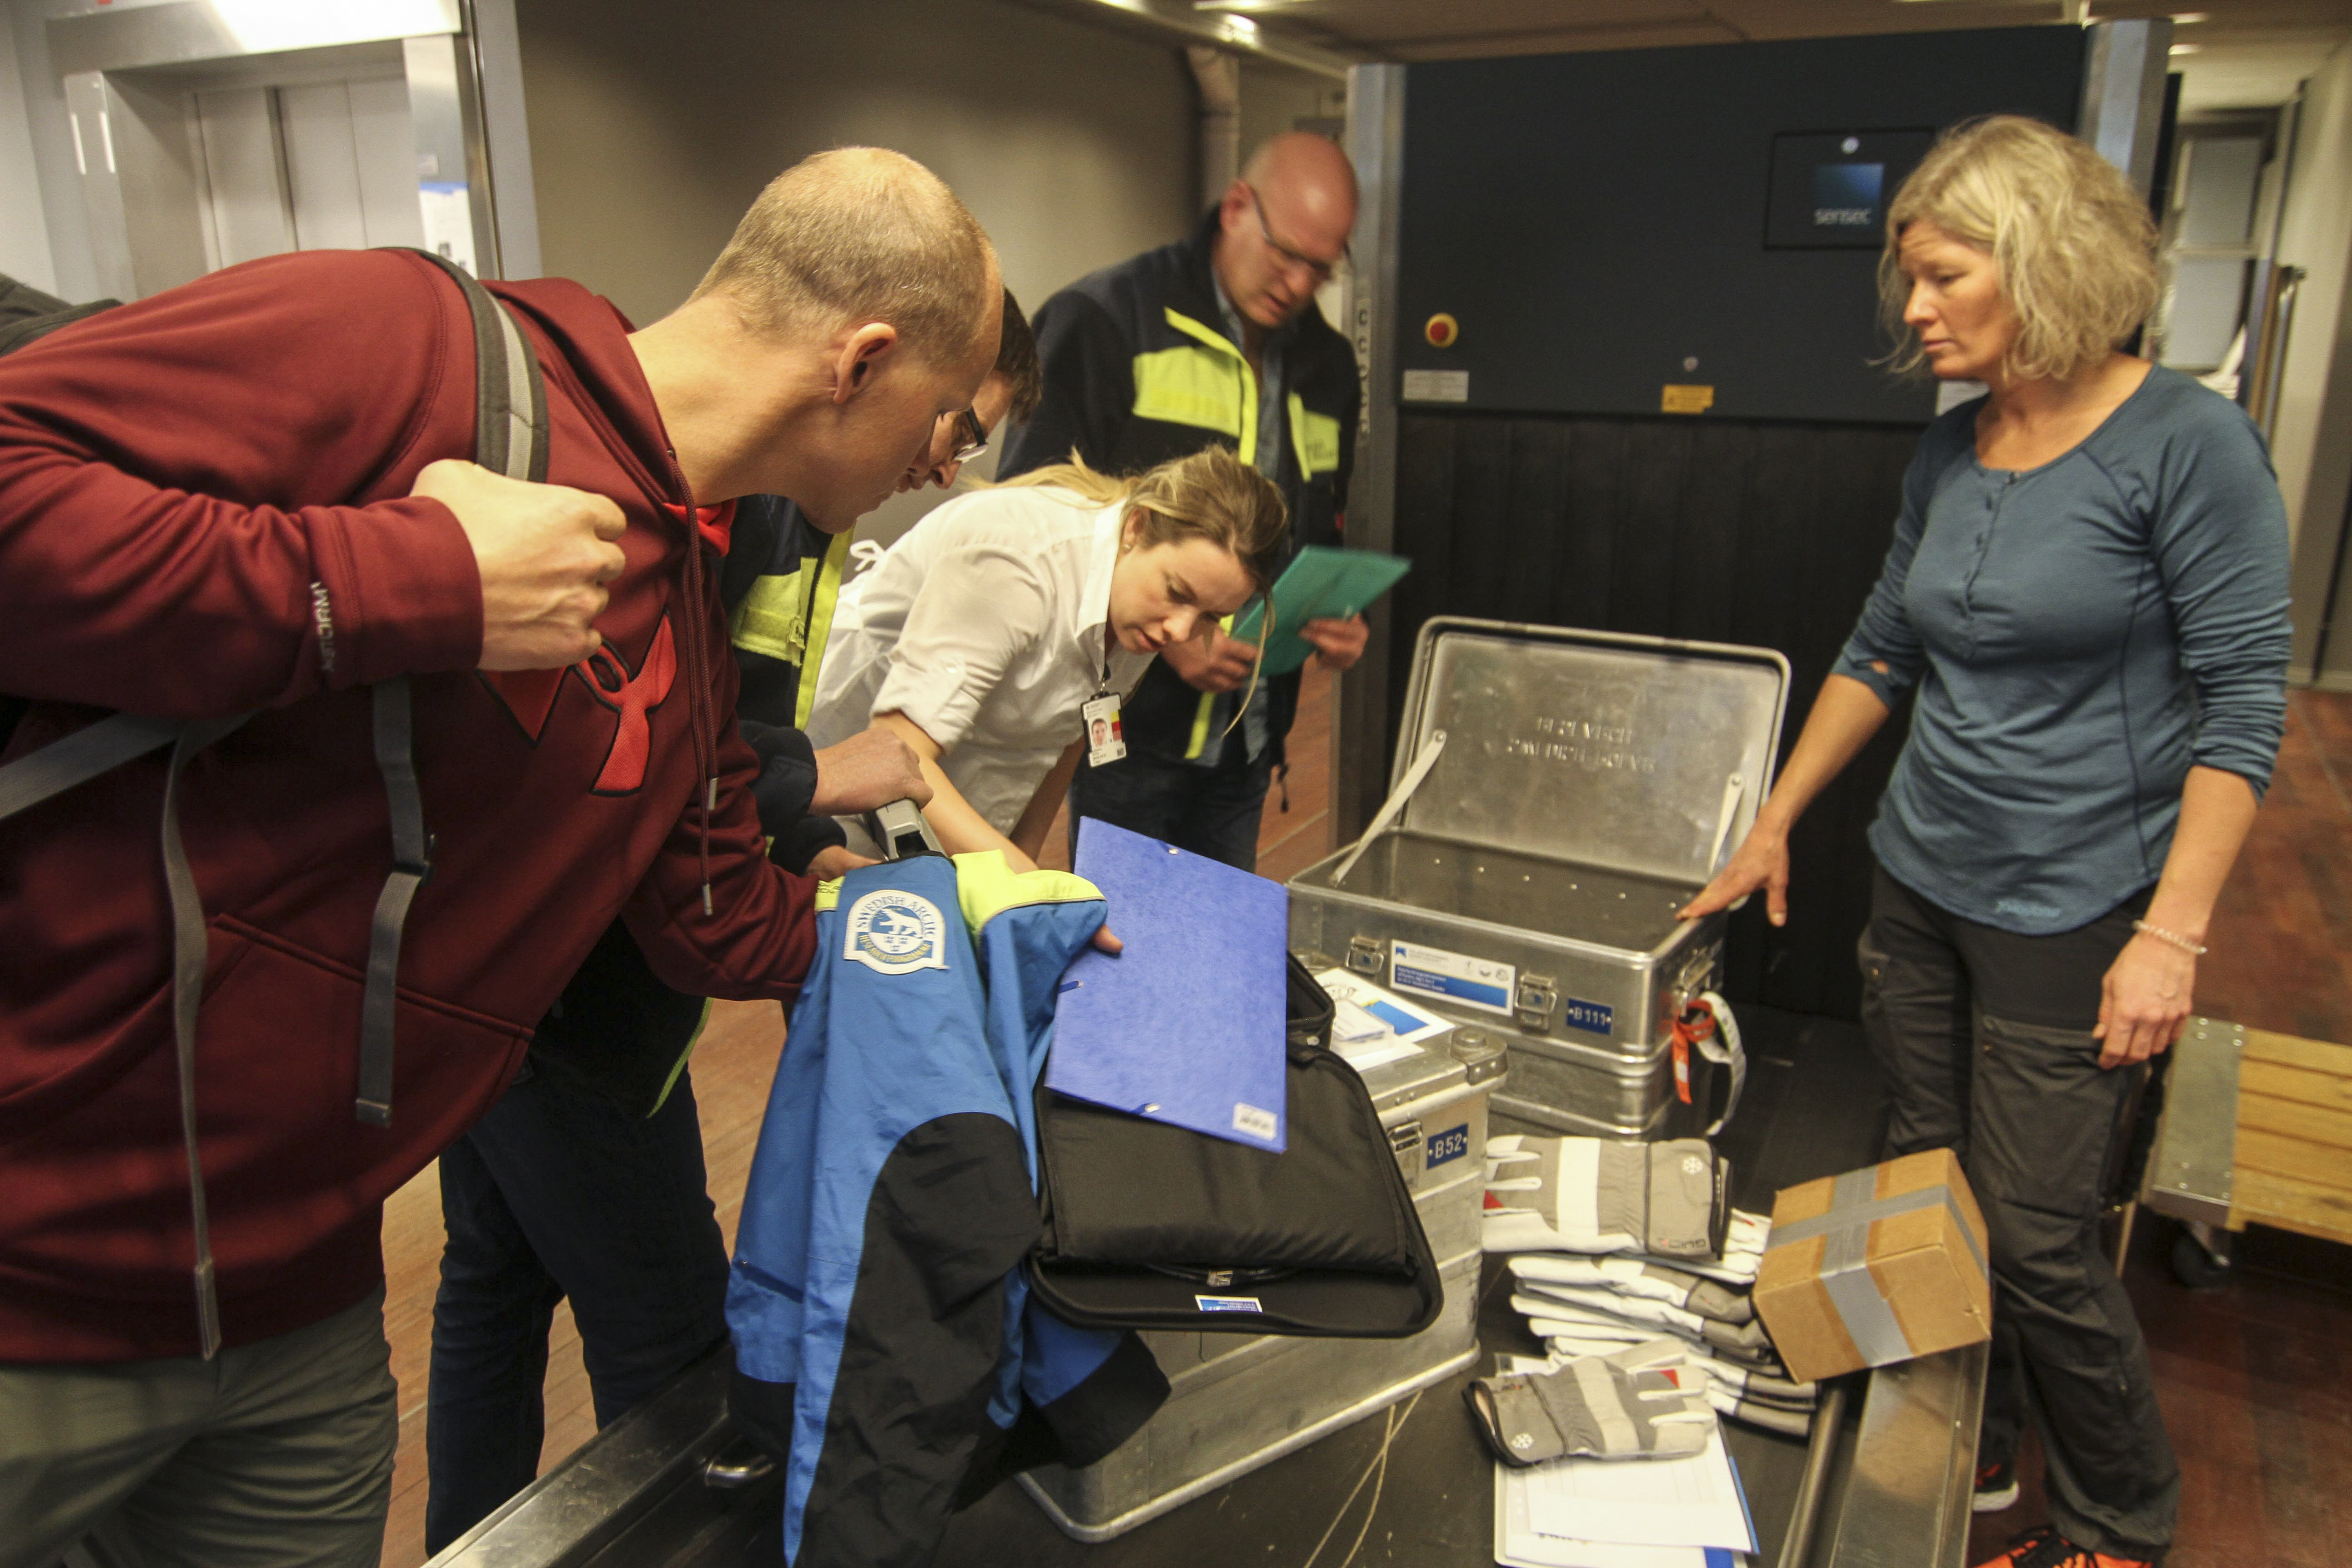 Everyone at the airport wants to open the aluminum boxes to see what's in it. Photo: Carl Lundberg